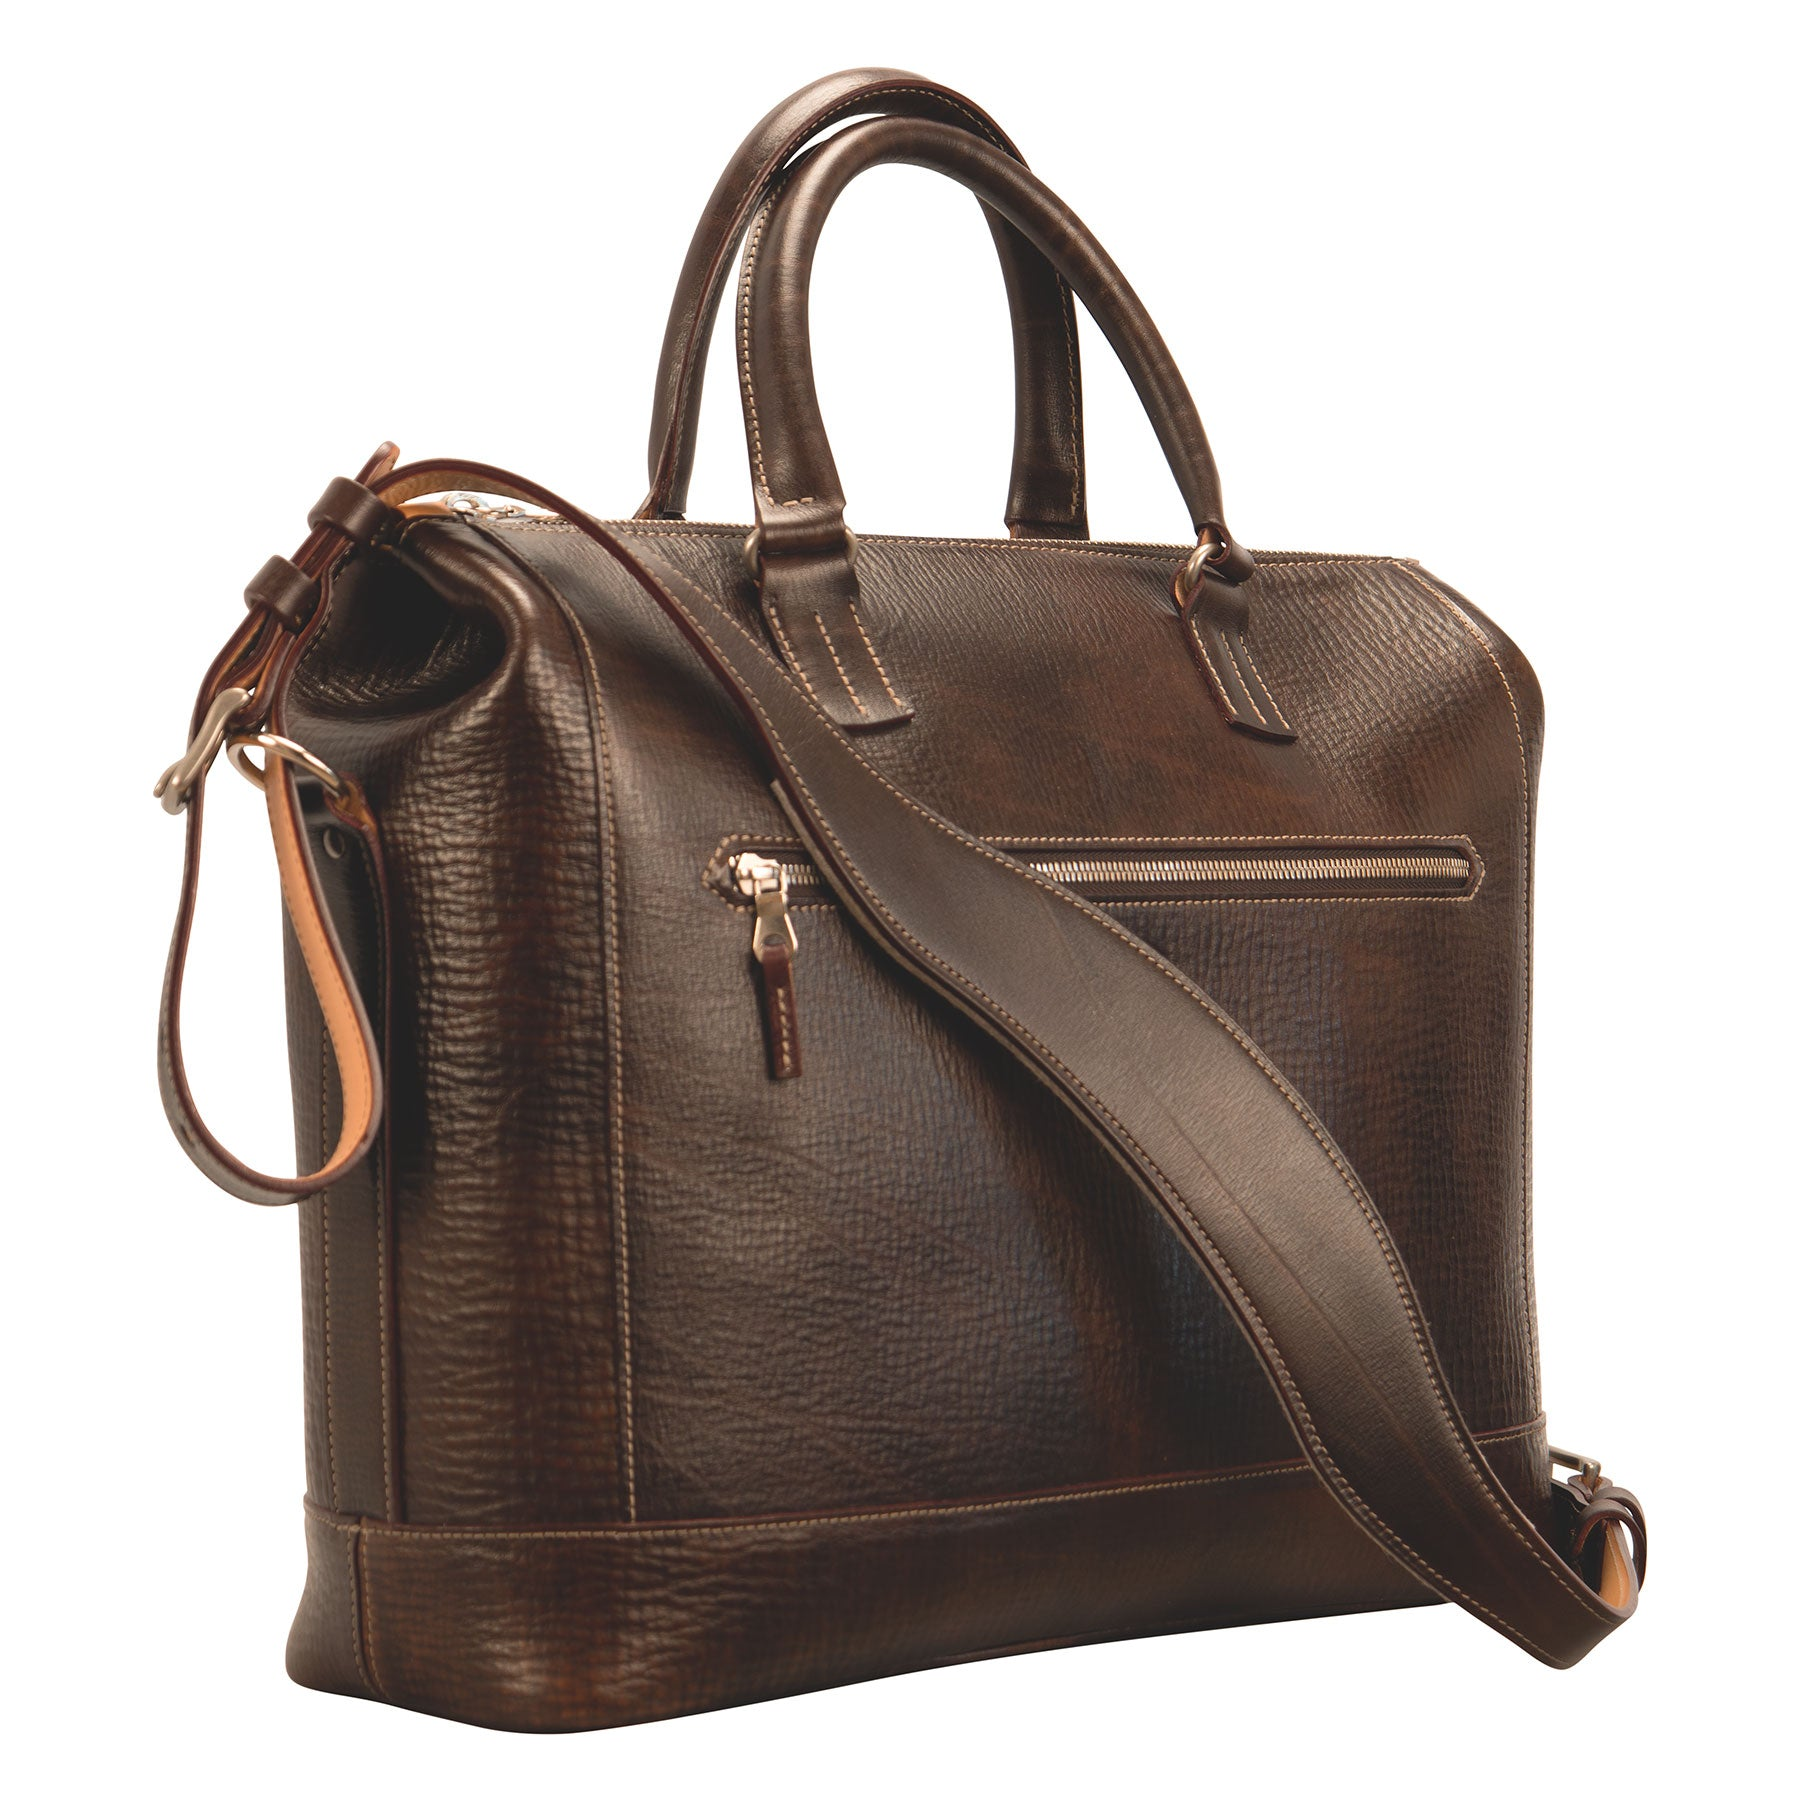 Club Bag: Hand-Grained, Hand-Colored Leather